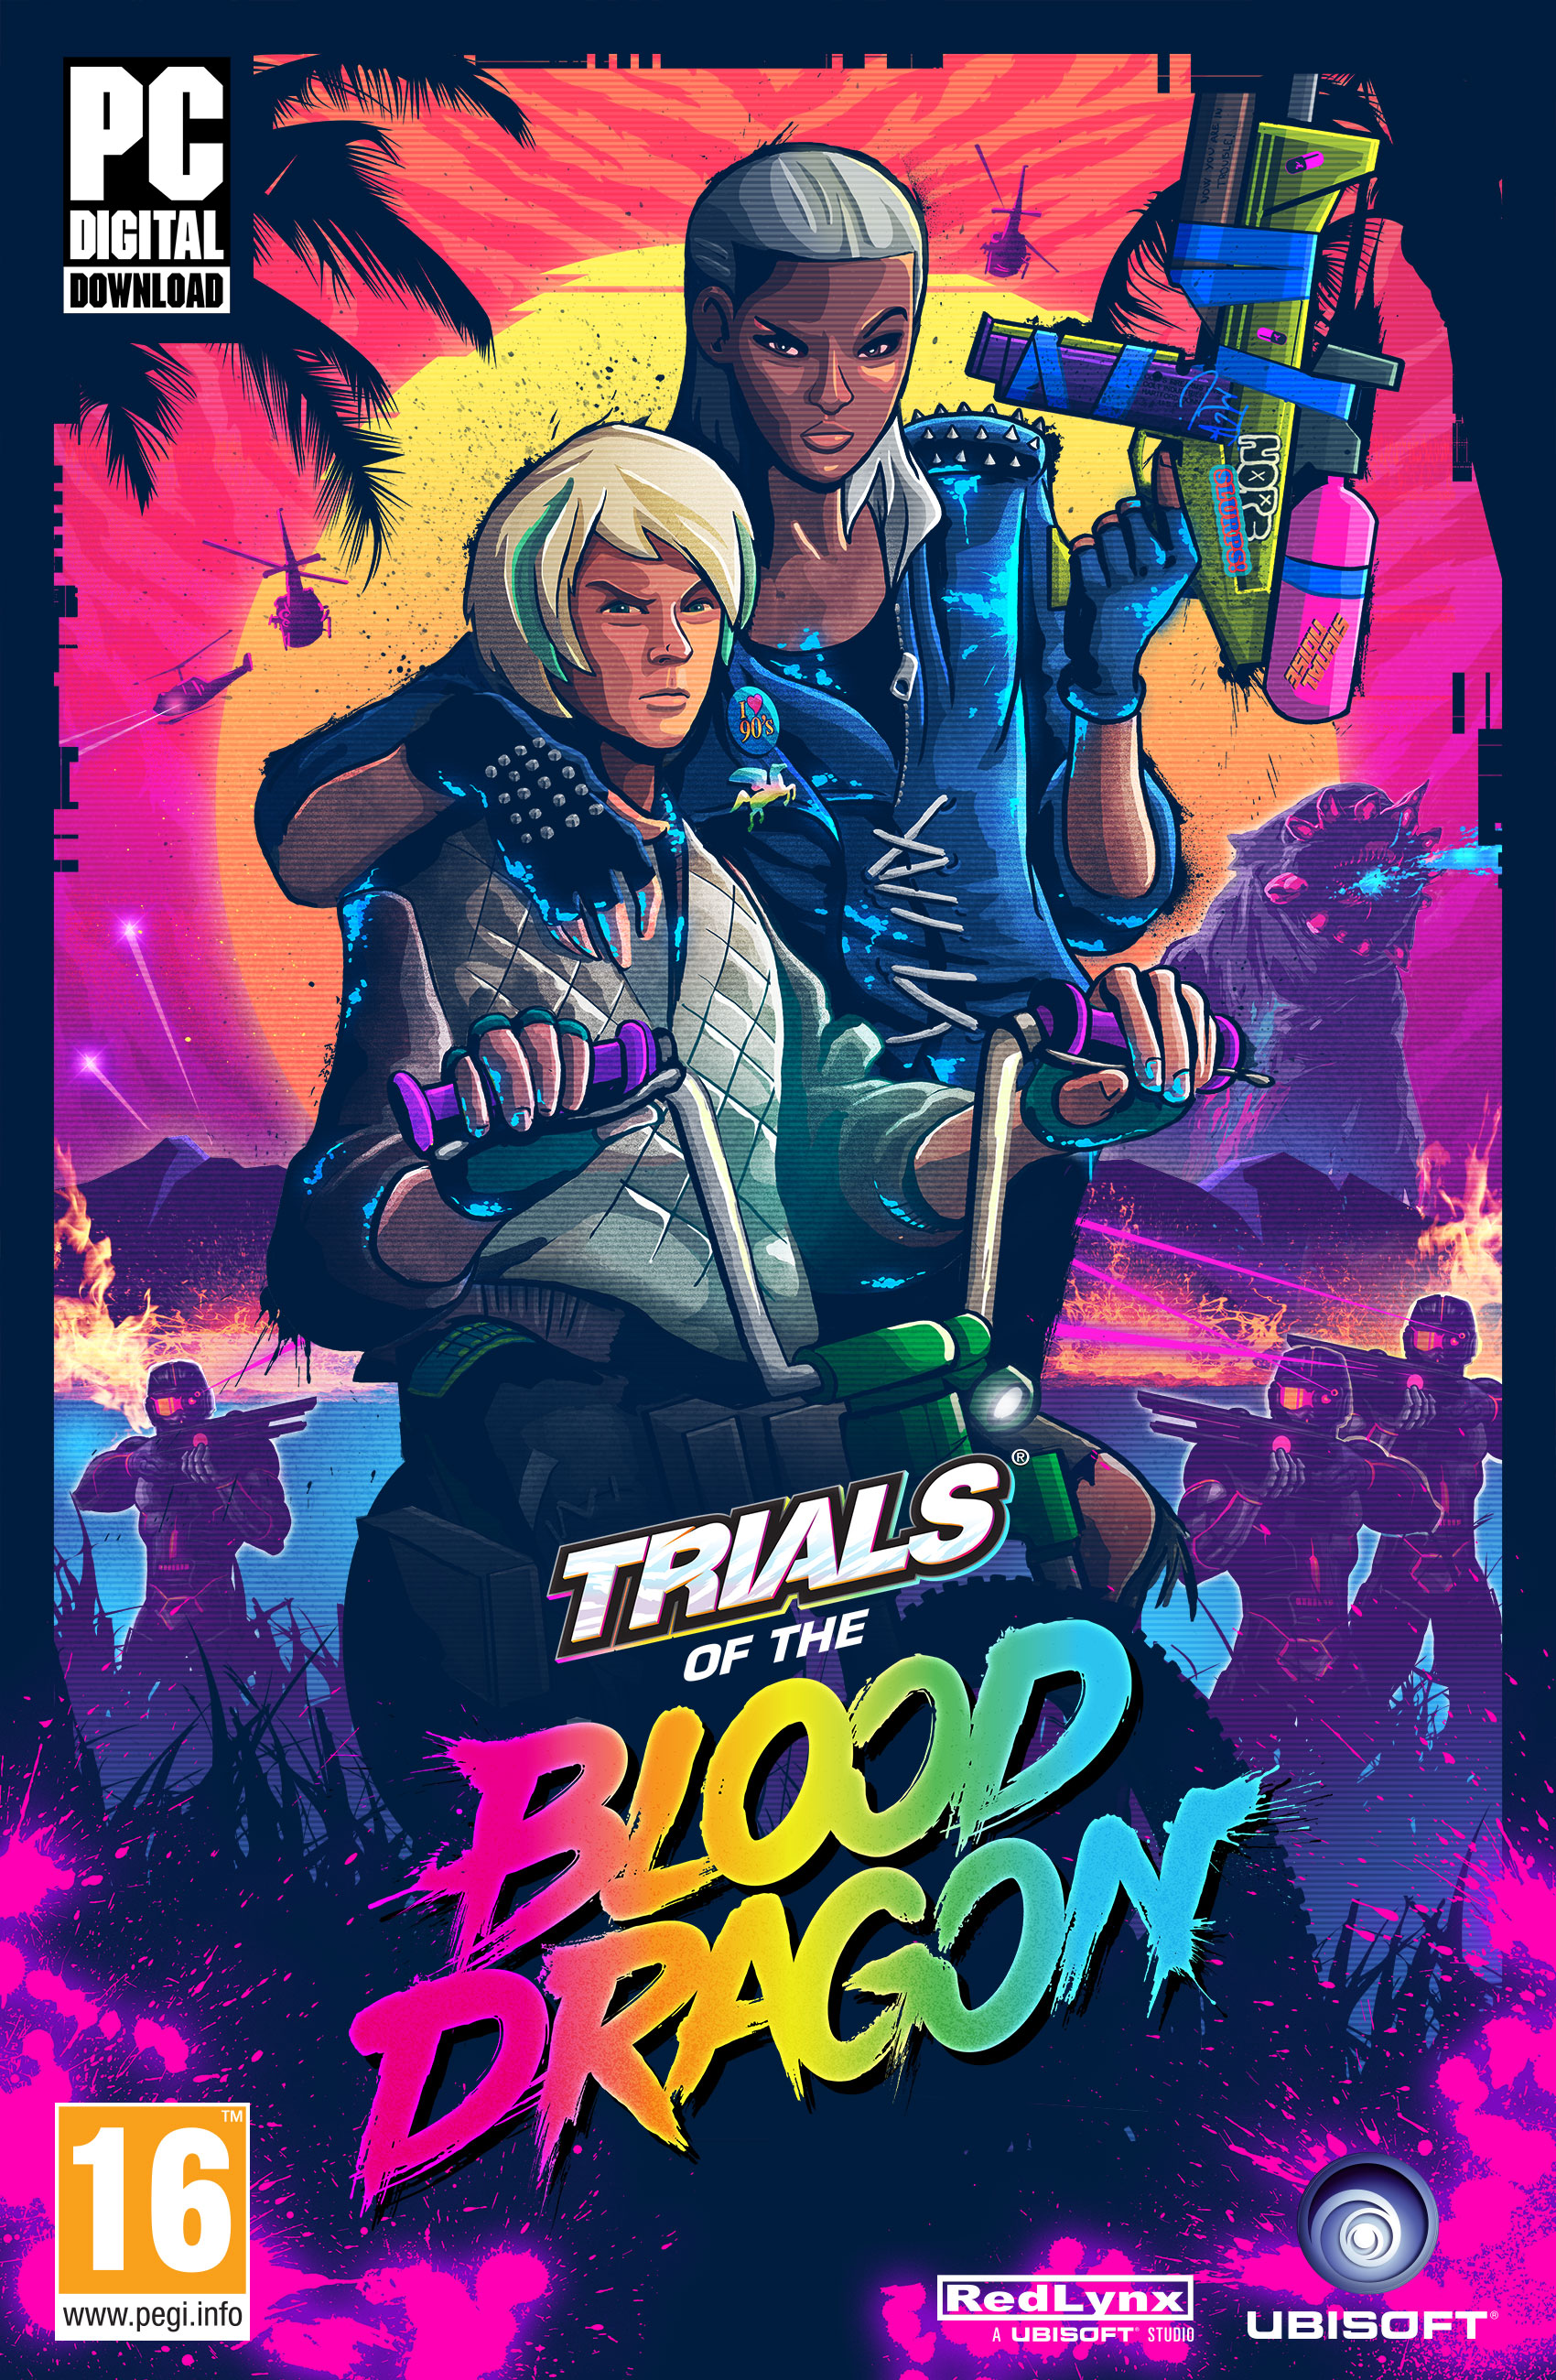 trials-of-the-blood-dragon-pc-code-uplay